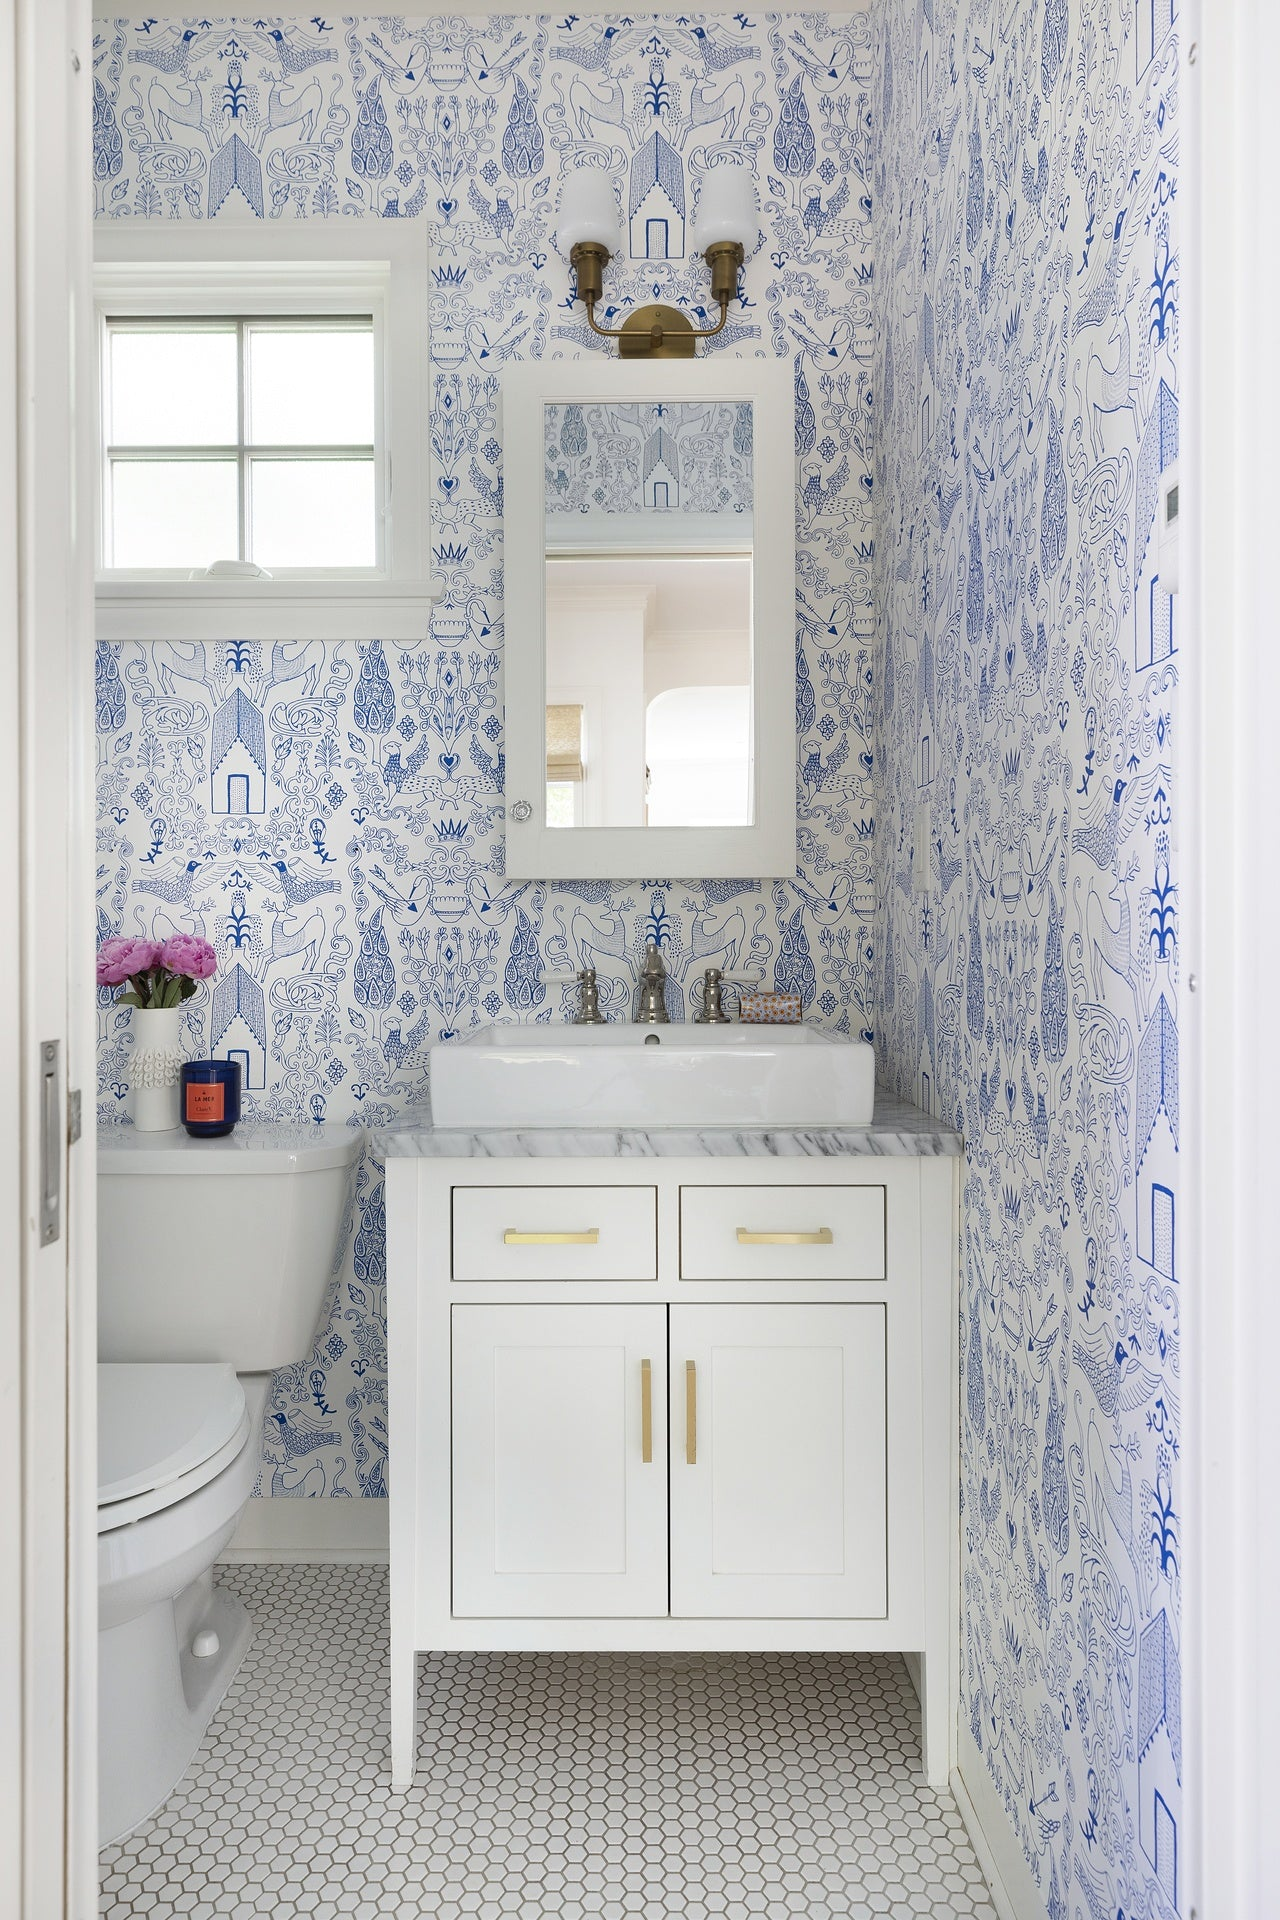 Netherote Blue wallpaper | Julia Rothman | Hygge & West